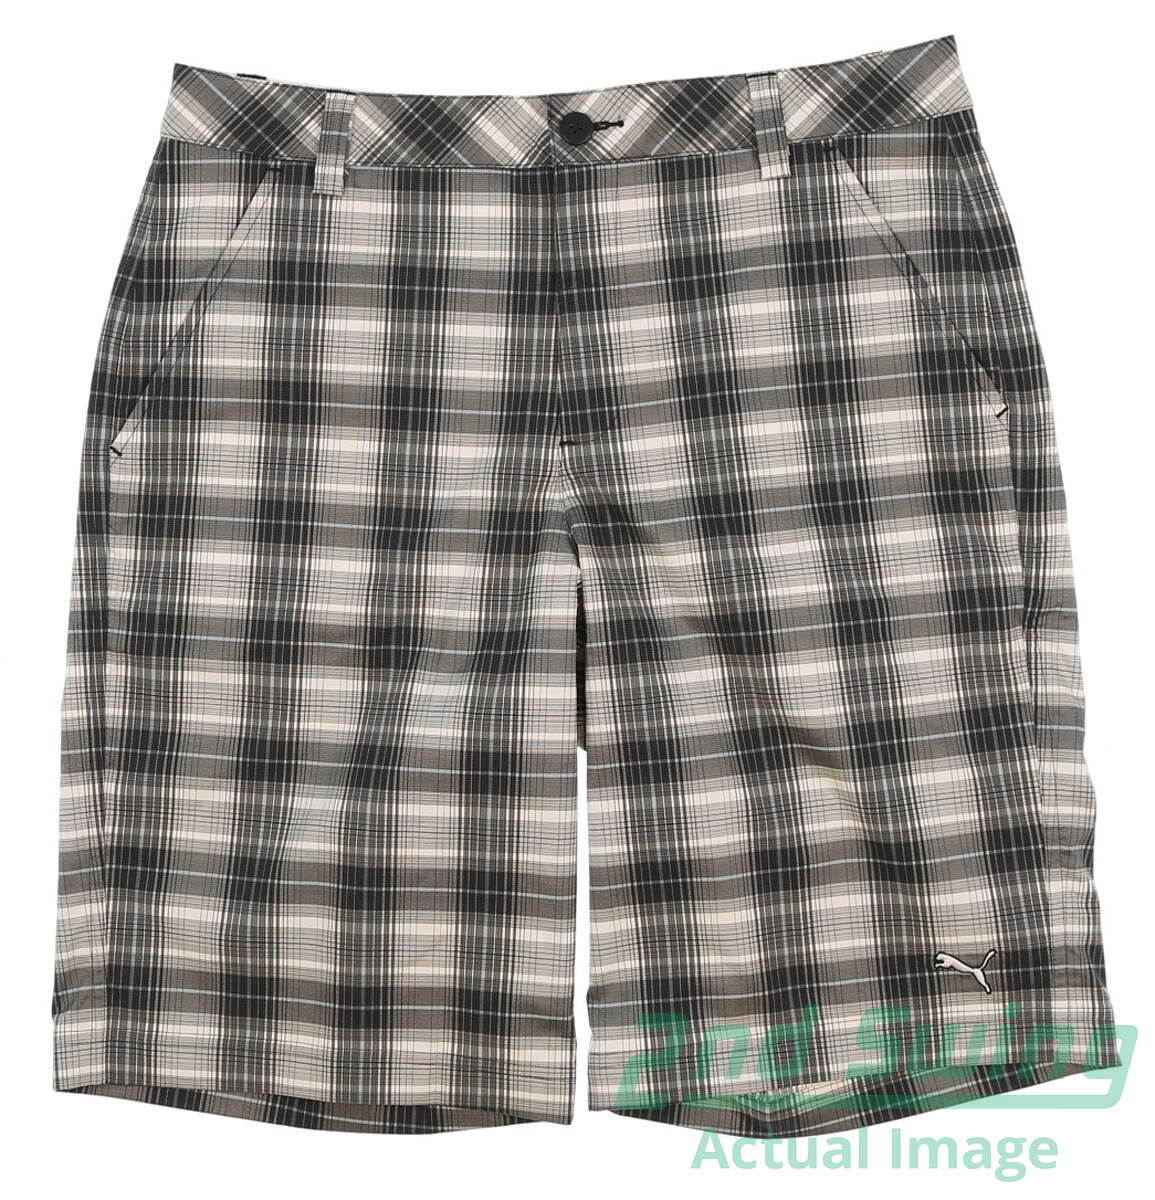 7a230f5408e0 New Mens Puma Plaid Tech Dry Cell Wicking Golf Shorts Size 32 Black 565518  MSRP  70